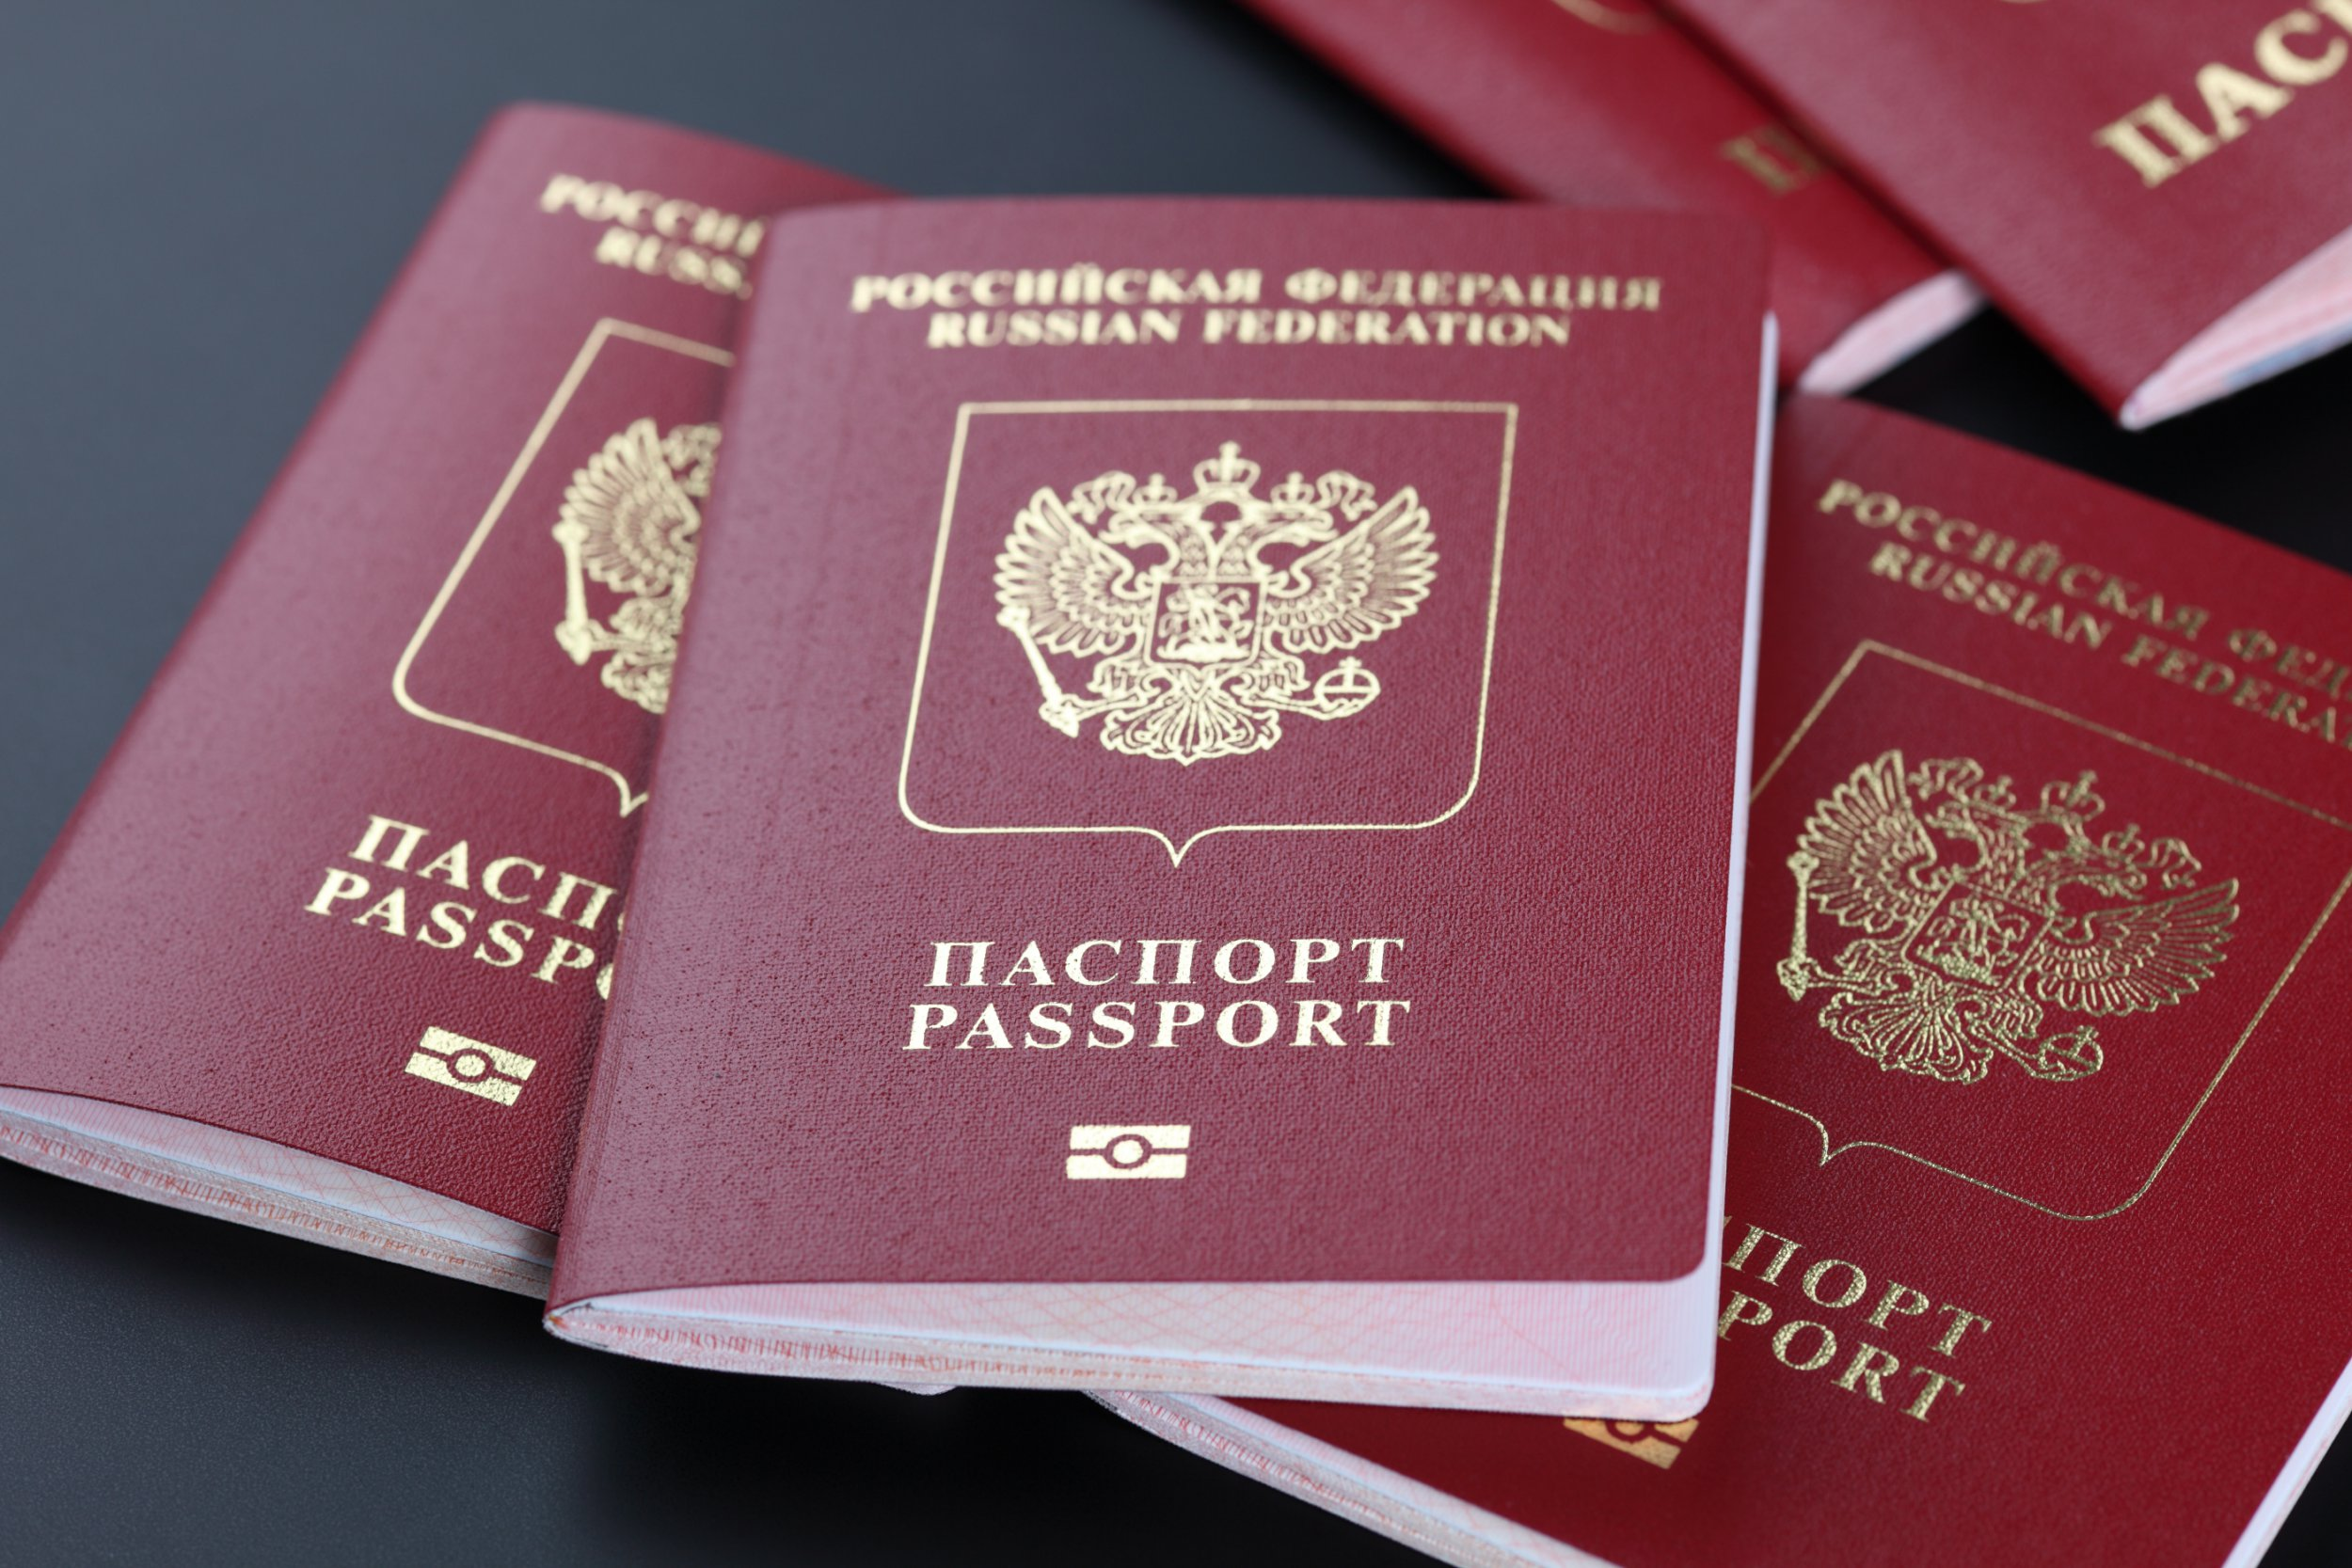 New Russian Federation passports with microchip.